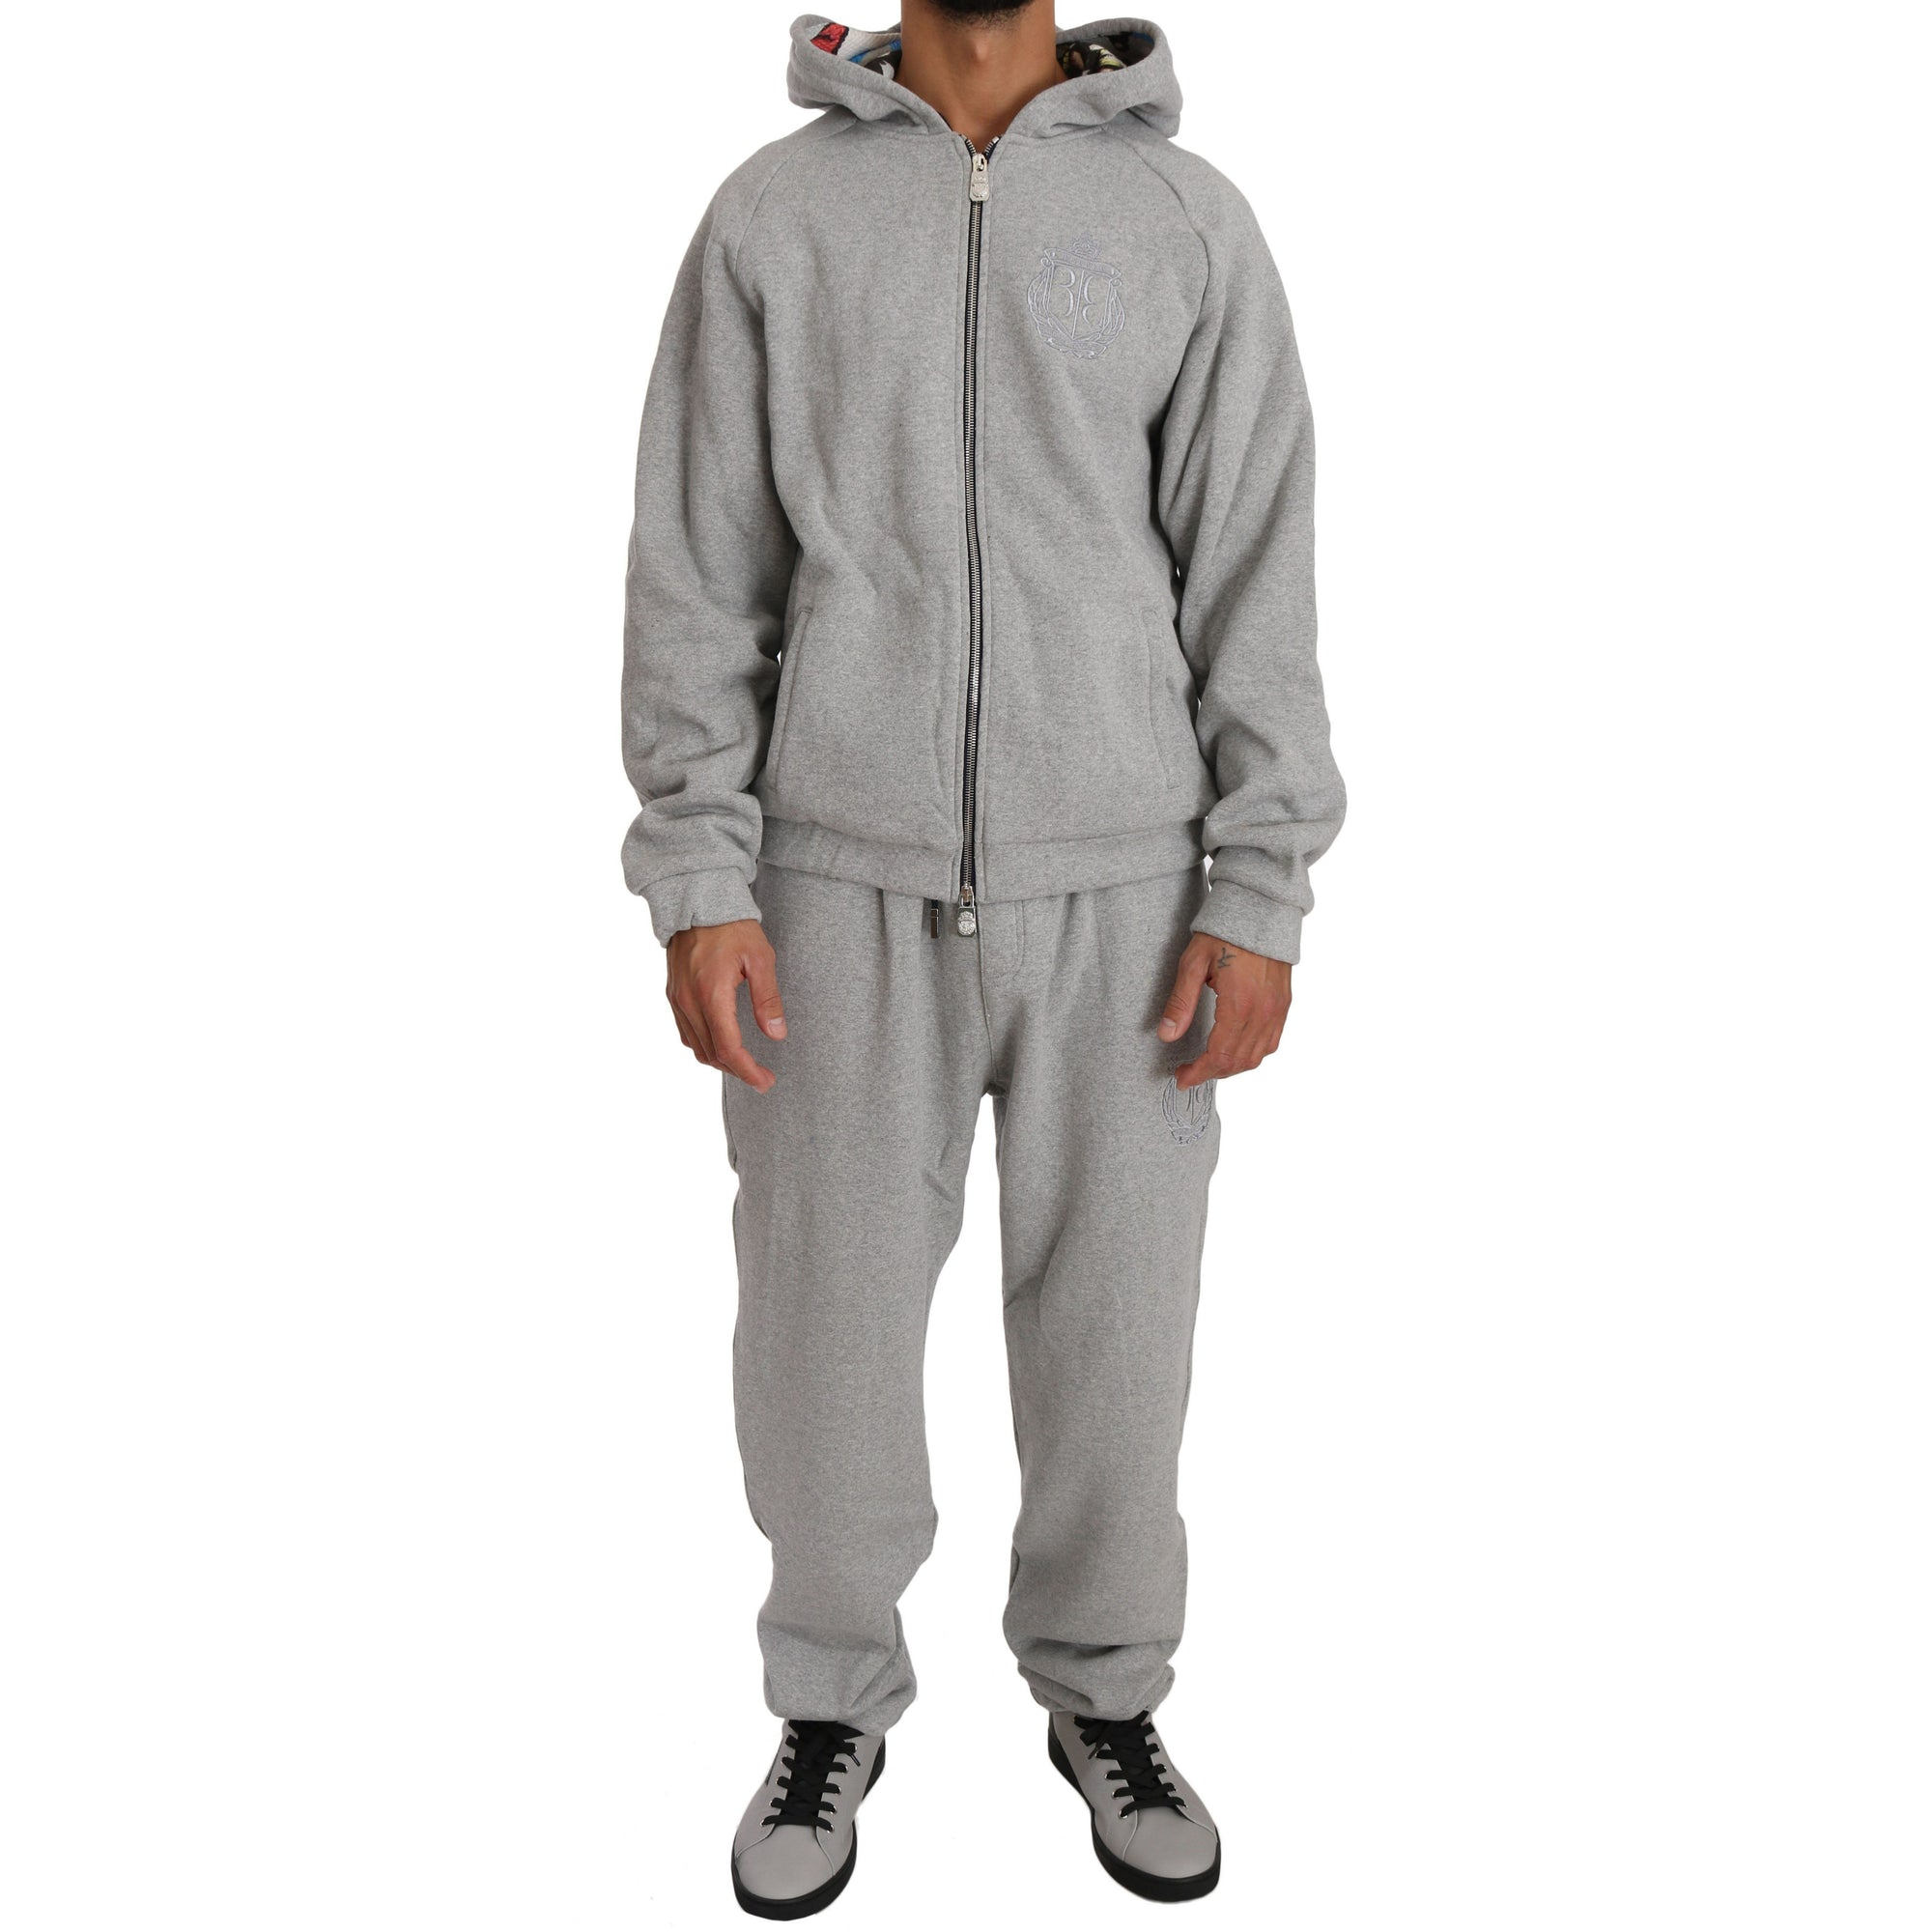 Gray Cotton Sweater Tracksuit Billionaire Italian Couture